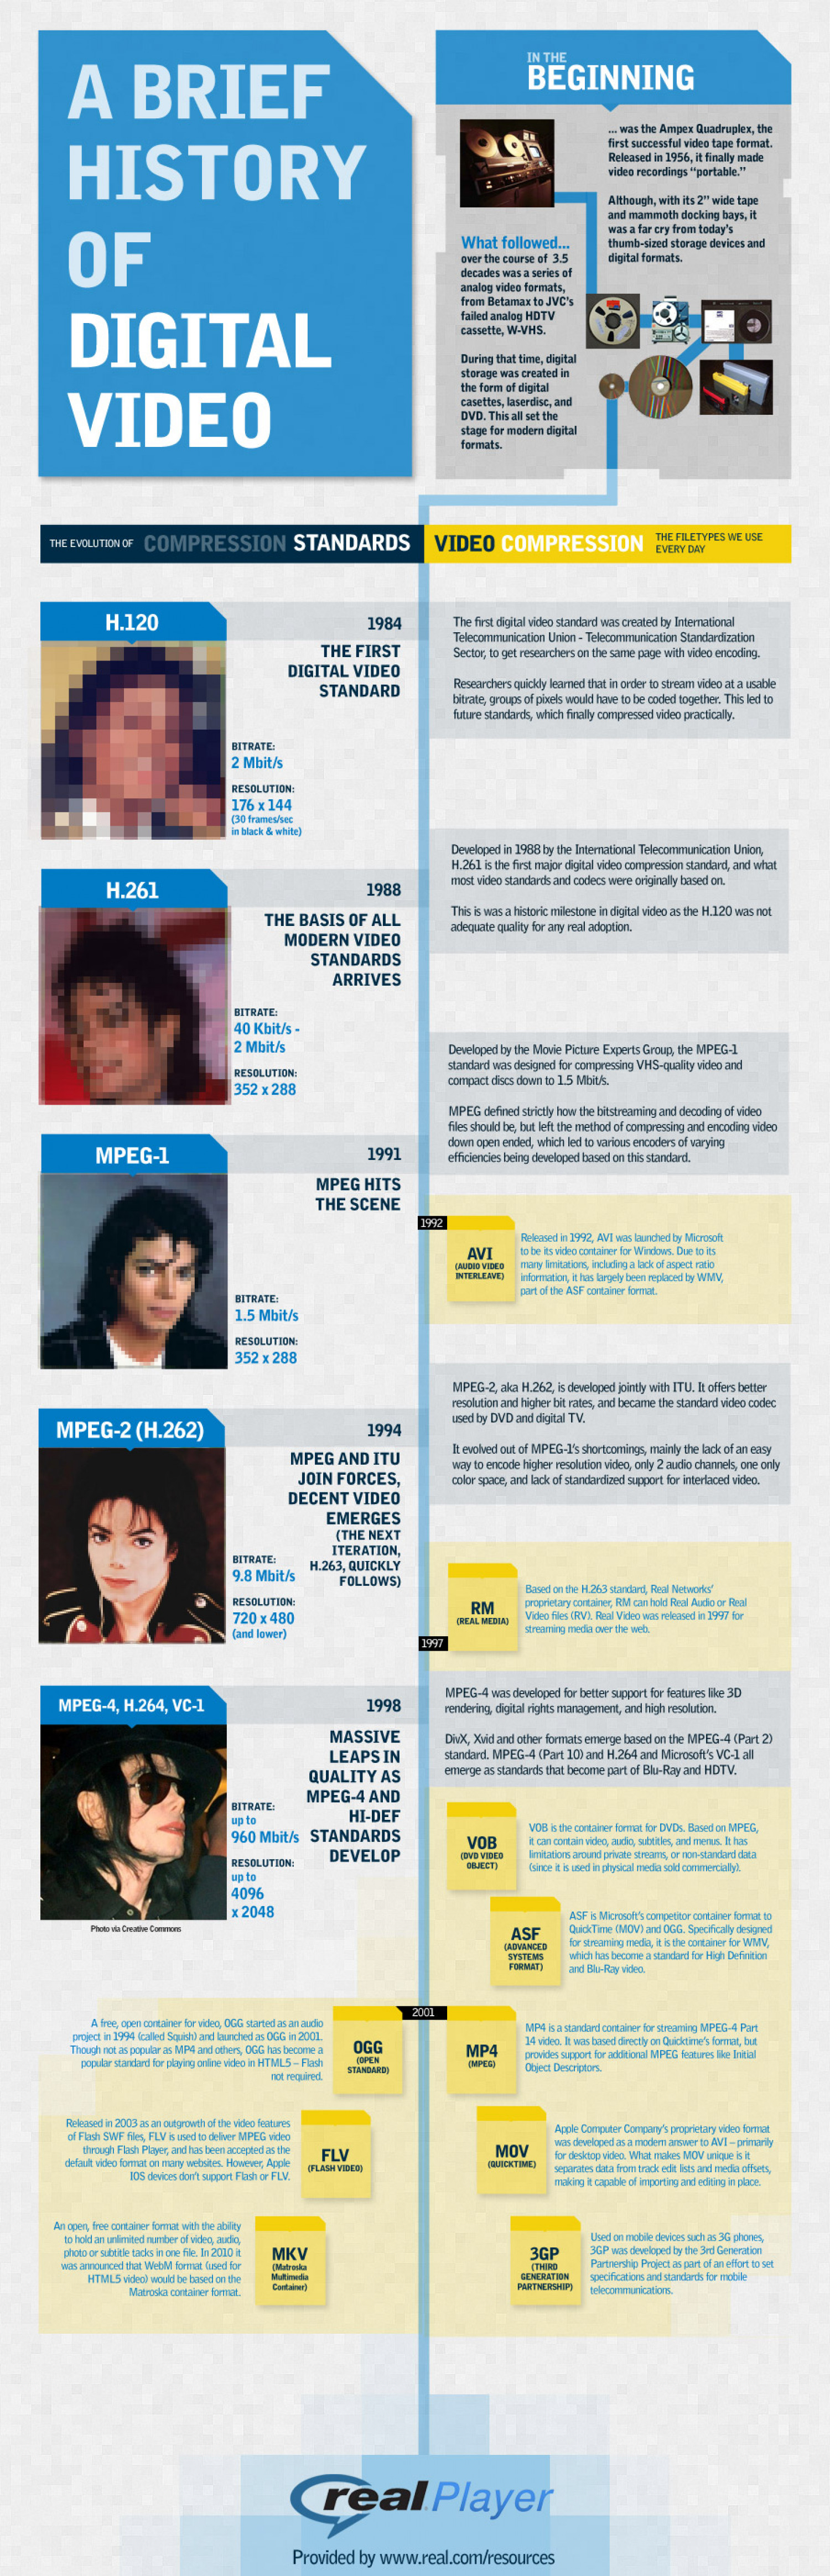 A Brief History of Digital Video Infographic